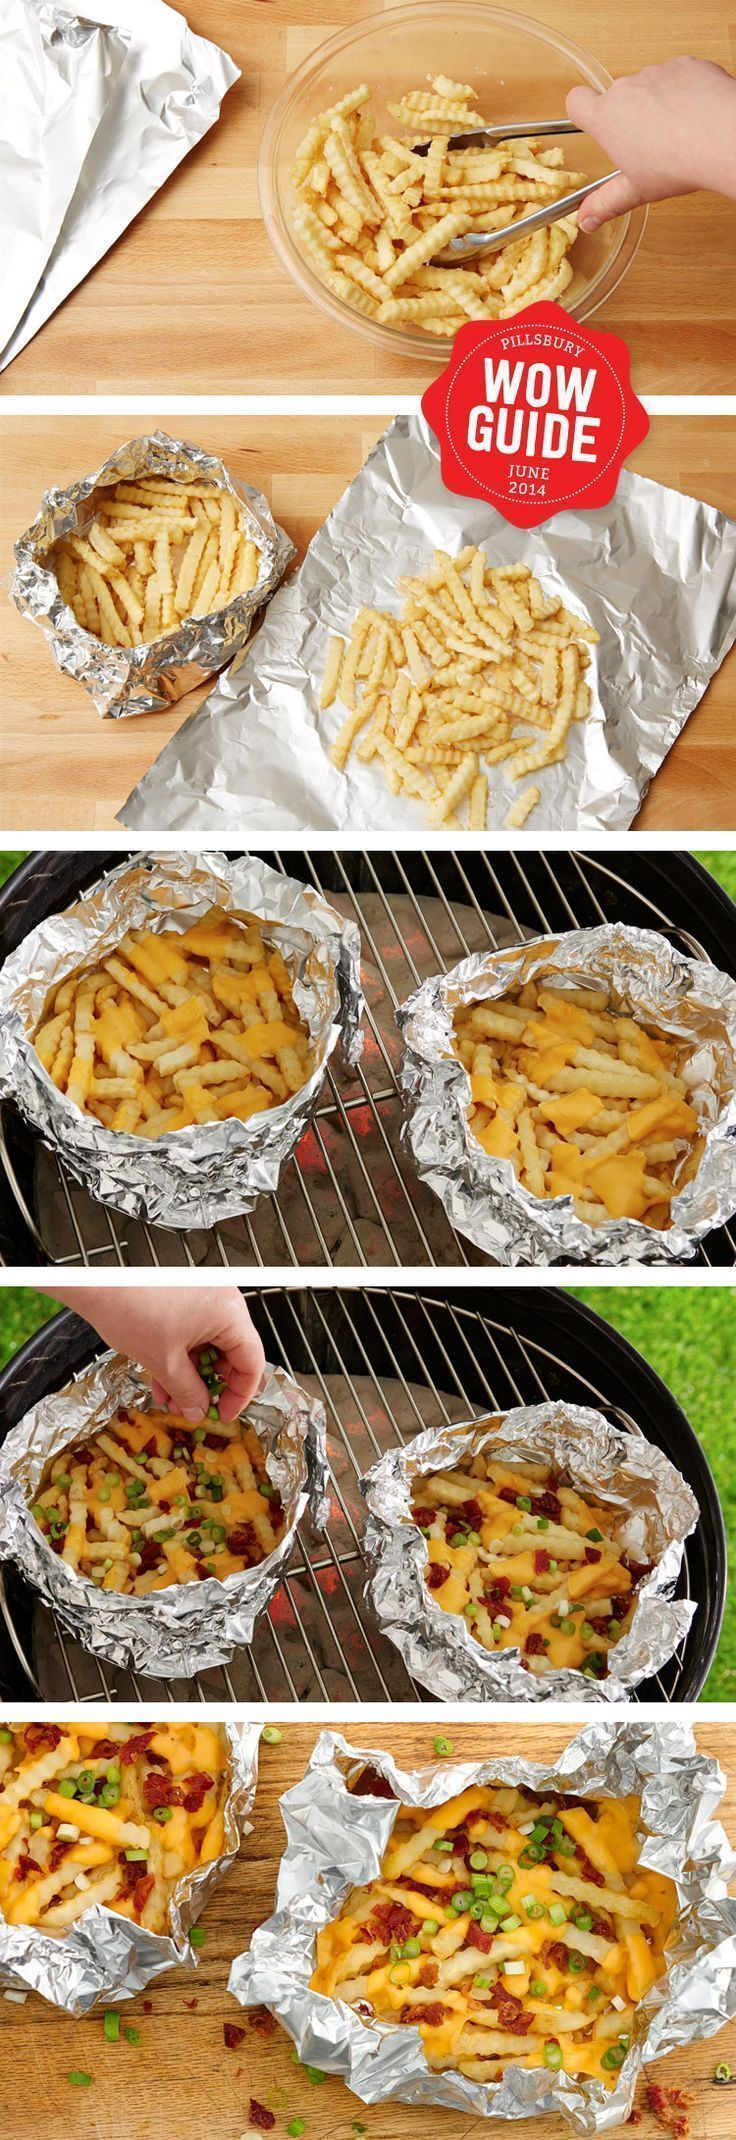 Grilled Cheese Fries in Aluminum Paper - Summer Recipes - ...  - Interessen - Grilled Cheese Fries